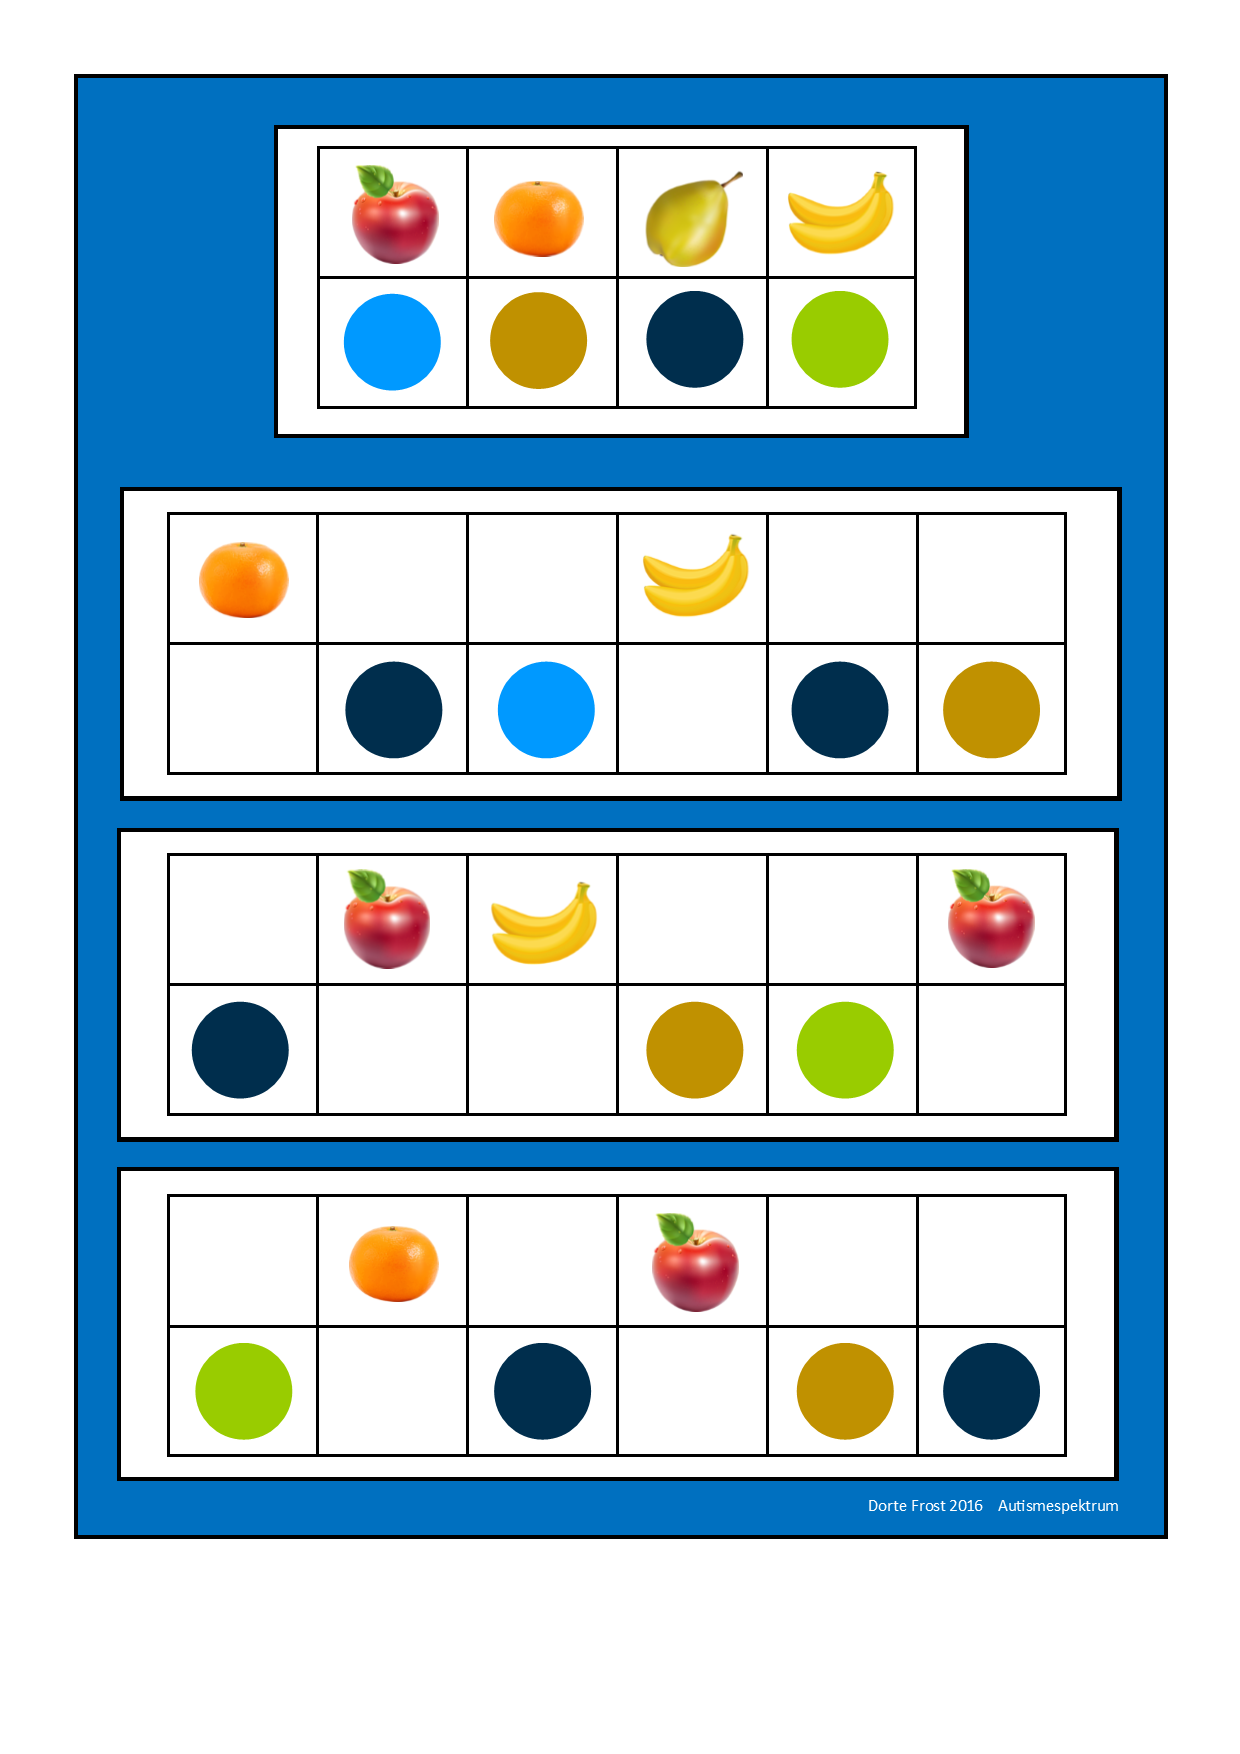 Board1 For The Fruit Visual Perception Game Find The Belonging Tiles On Autismespektrum On